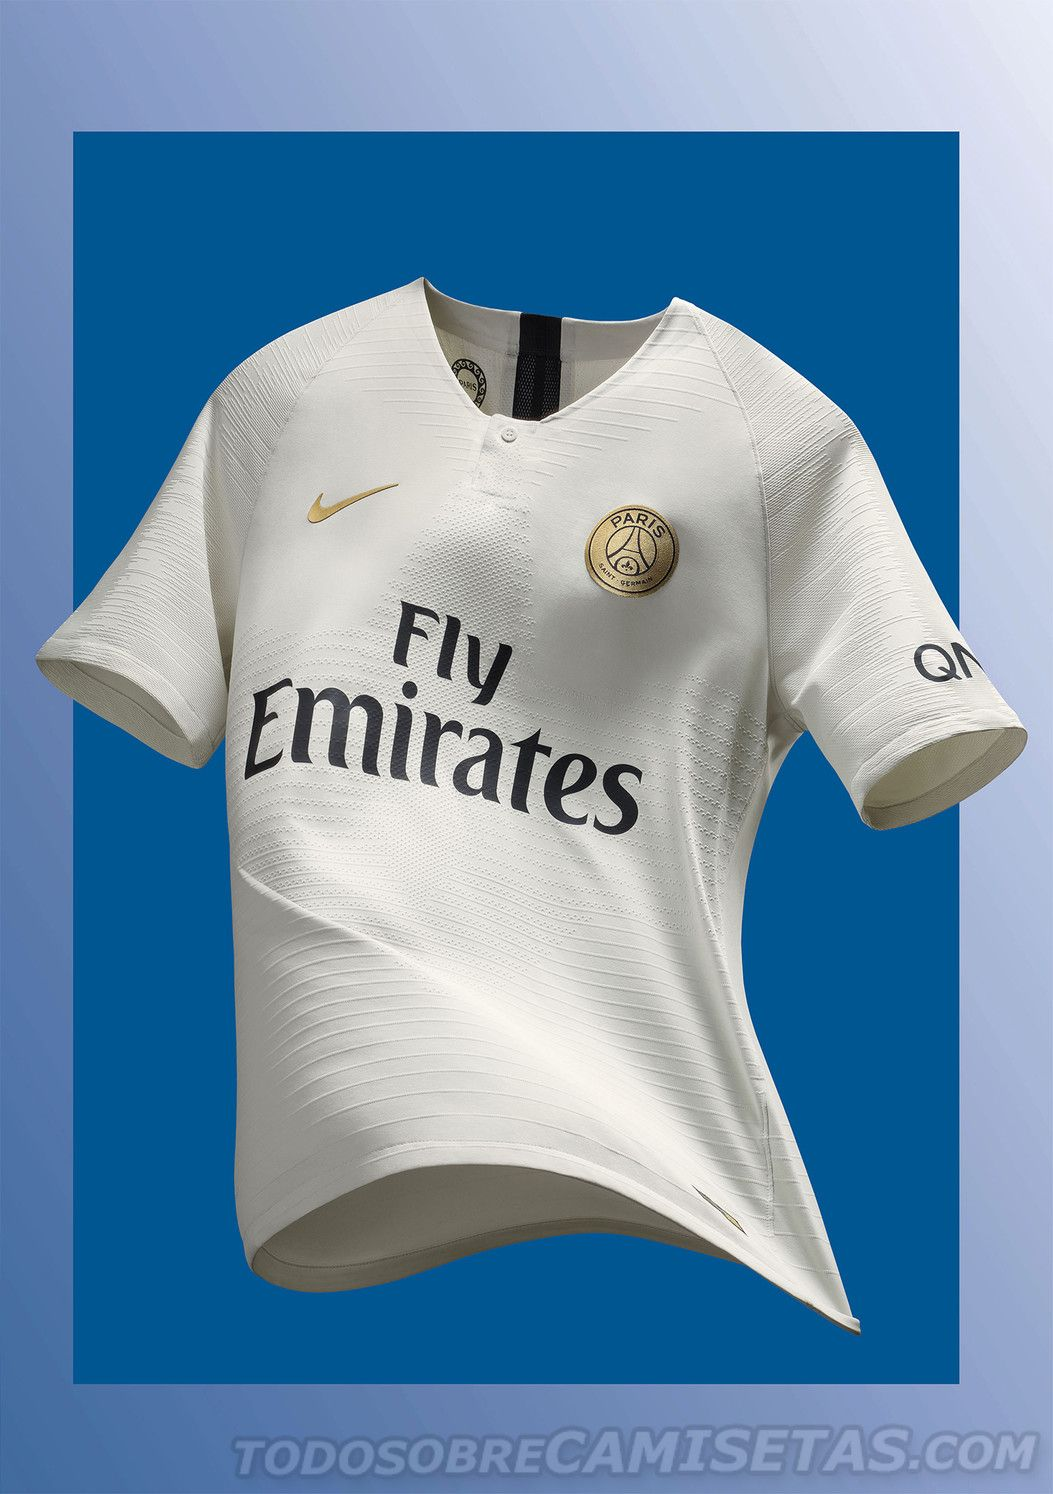 PSG 2018-19 Nike Away Kit  3fa2be02c55f5